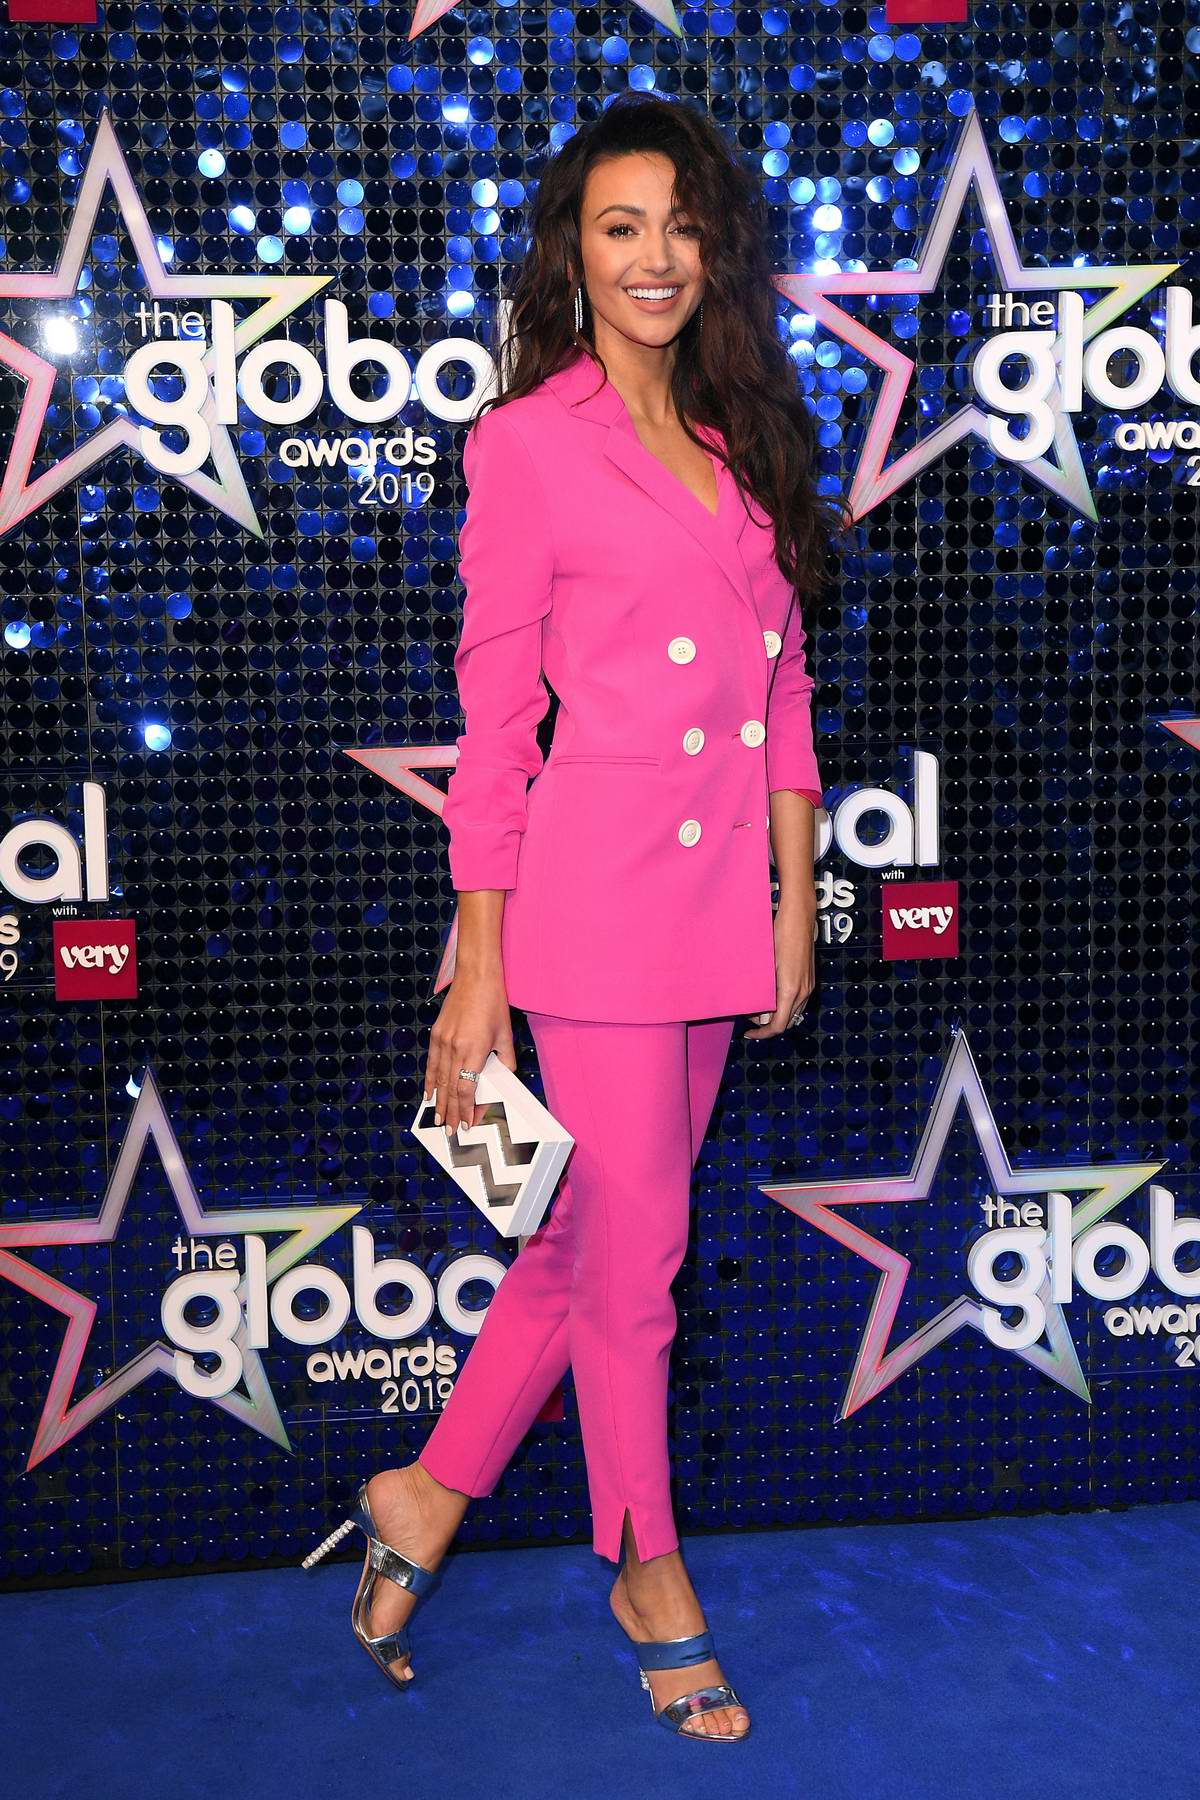 Michelle Keegan attends The Global Awards 2019 at The Hammersmith Apollo in London, UK